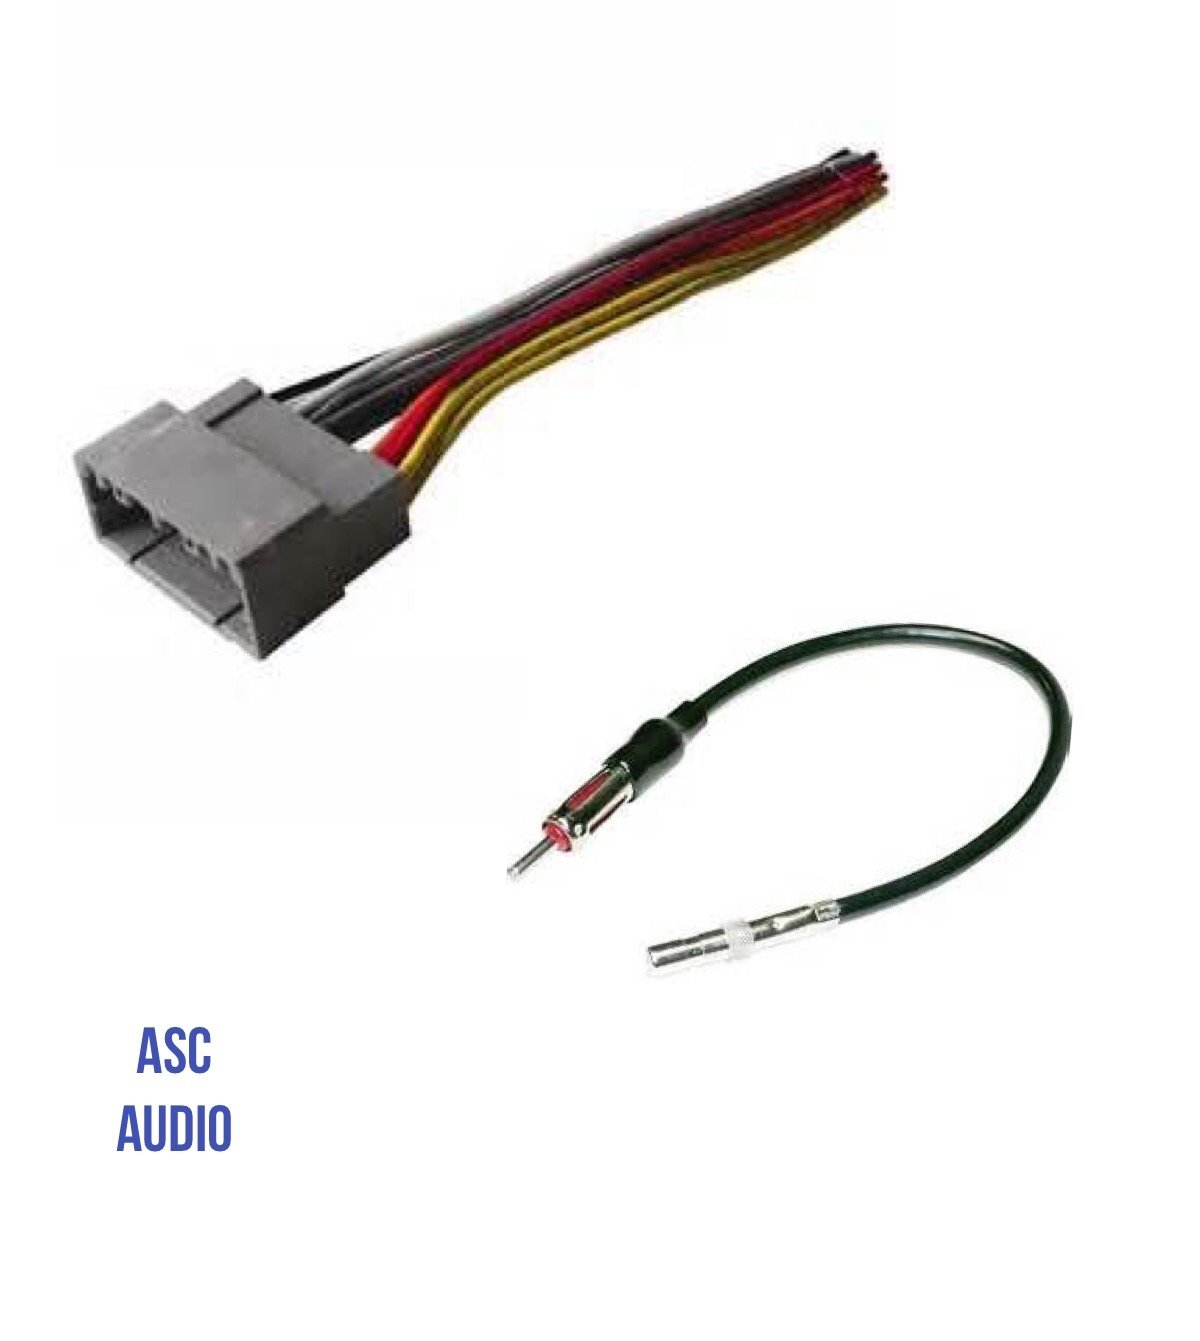 Asc Audio Car Stereo Wire Harness And Antenna Adapter To Wiring Dodge Neon Install An Aftermarket Radio For Select Chrysler Jeep Compatible Vehicles